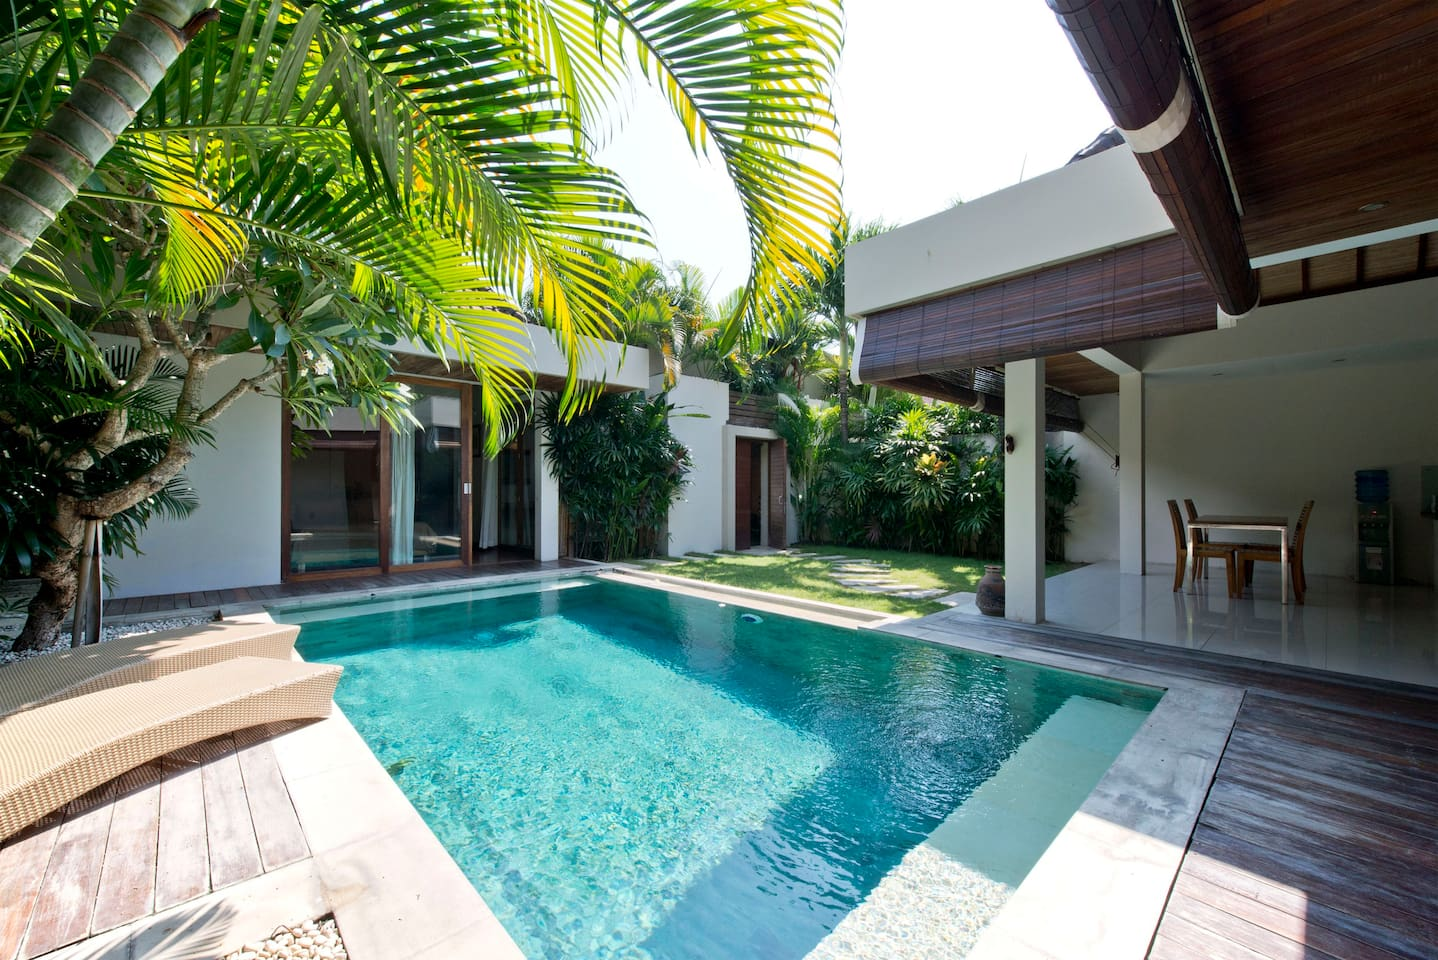 Swimming Pool With Garden.